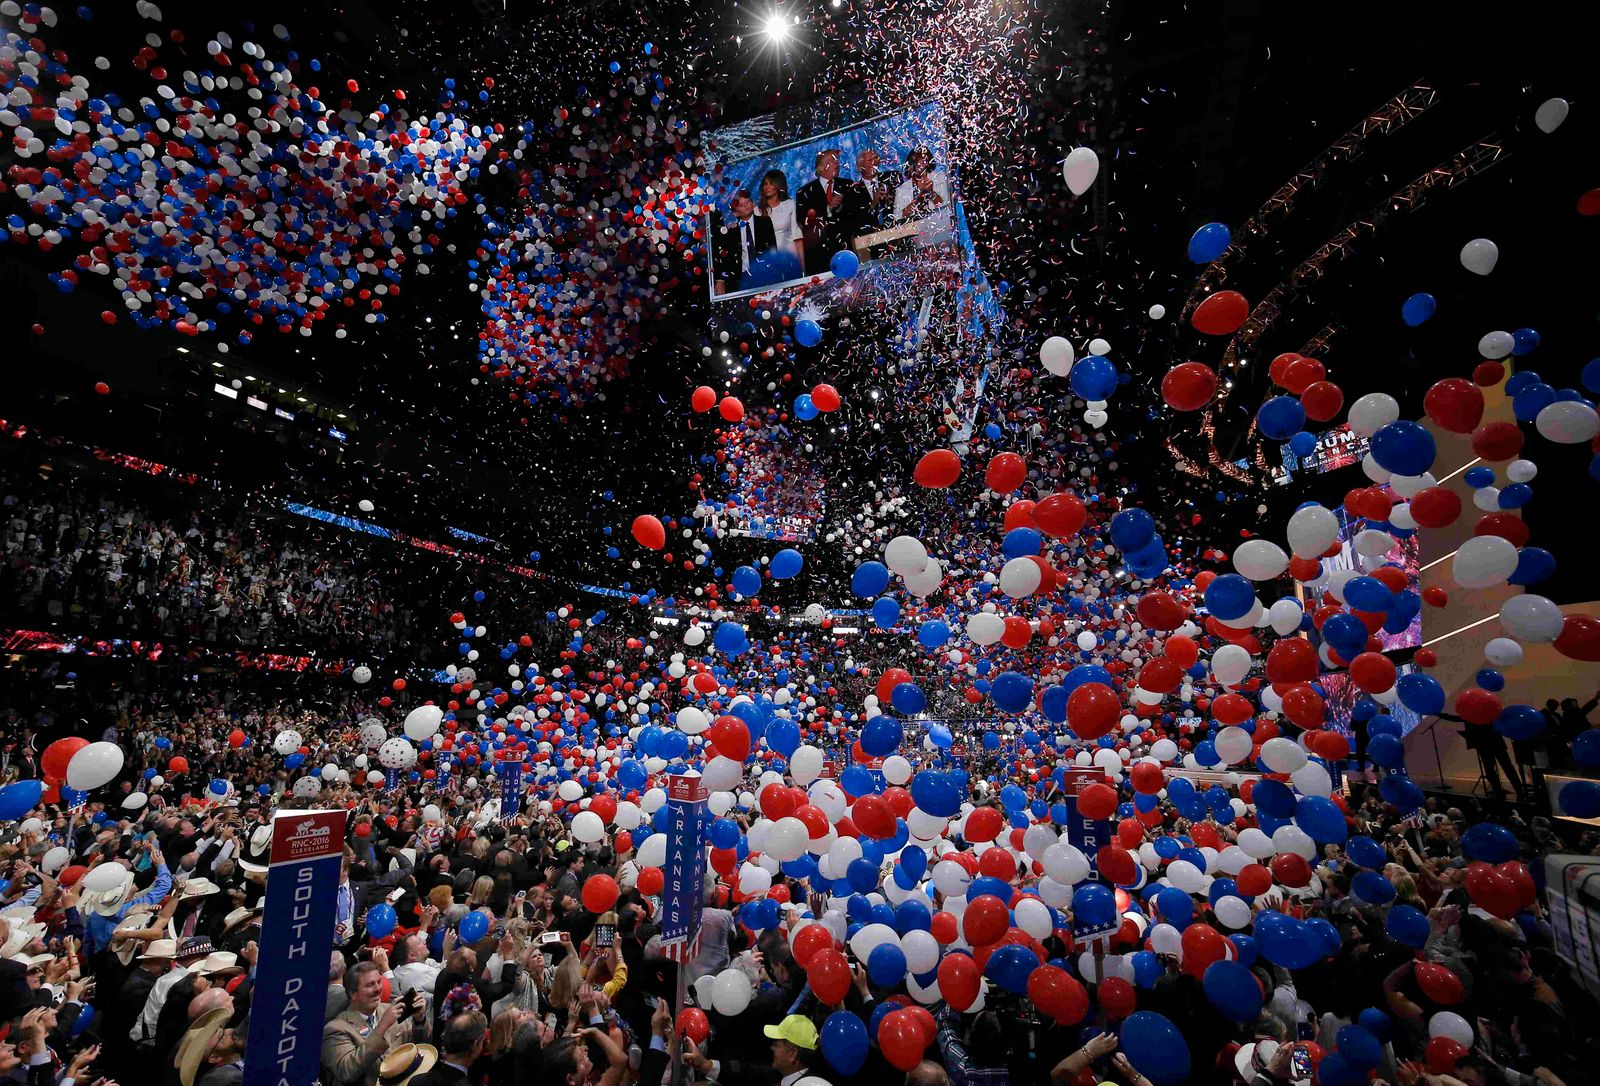 Balloons drop after U.S. Republican presidential nominee Donald Trump's speech with his family seen on screen at the Republican National Convention in Cleveland